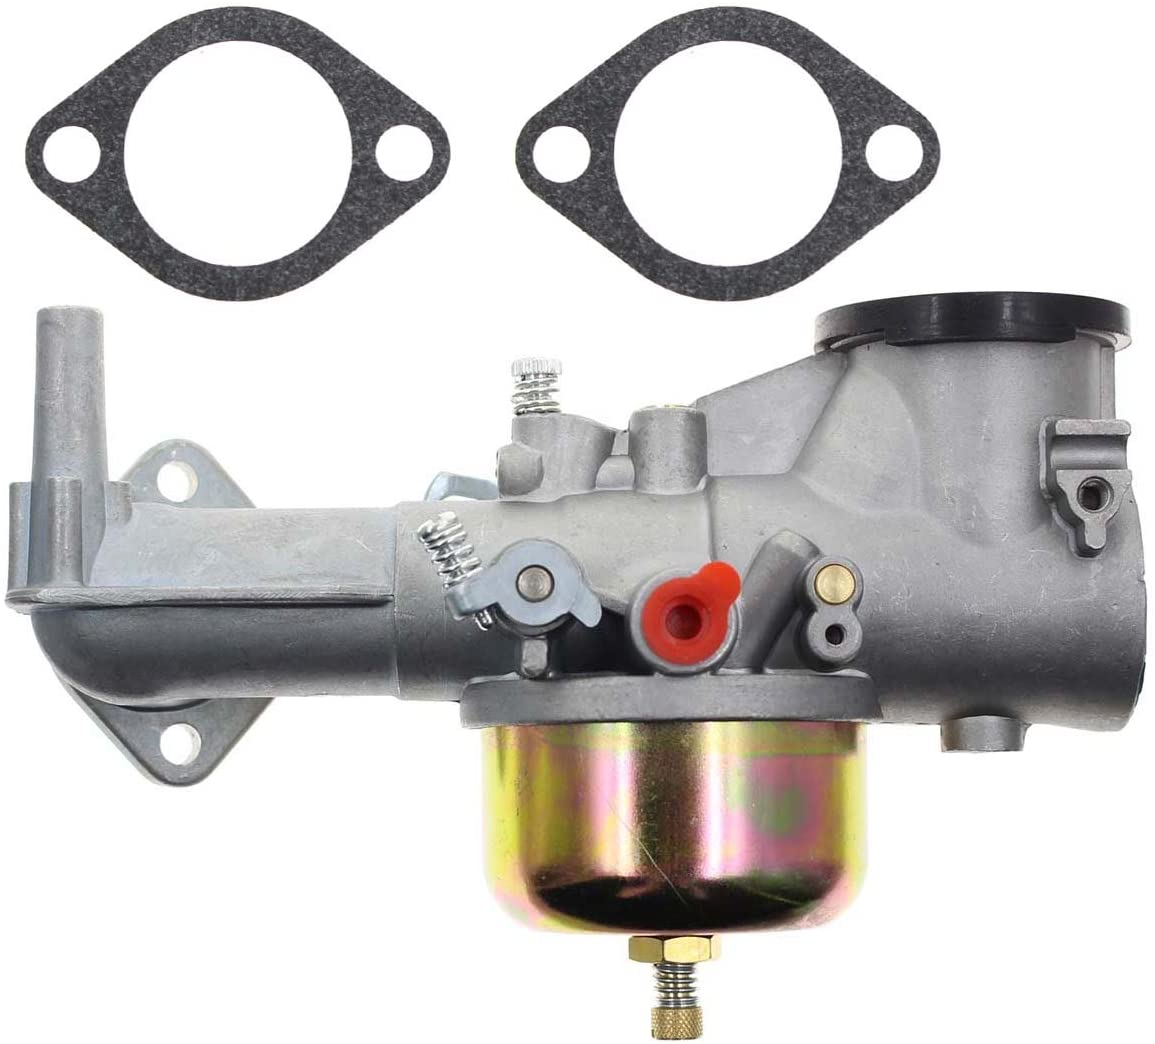 Carbhub 491590 Carburetor for Briggs & Stratton 491590 390811 392152 Carb Fits Briggs & Stratton 191700 192700 193700 Engine Series with Gasket Kit